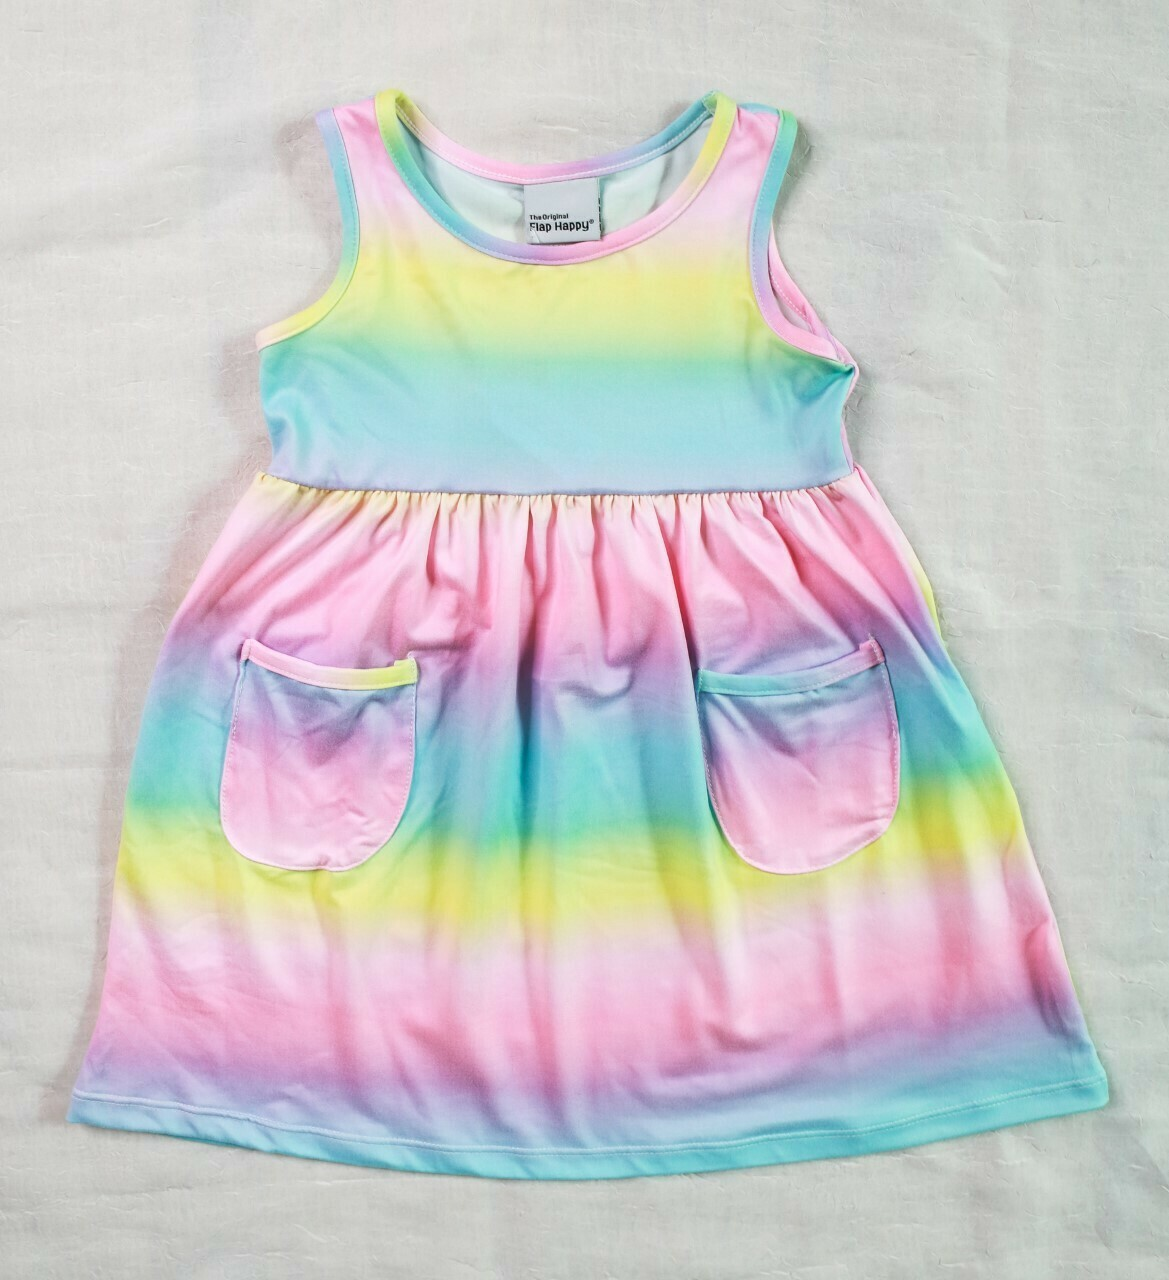 Flap Happy Rainbow Dress DAHB